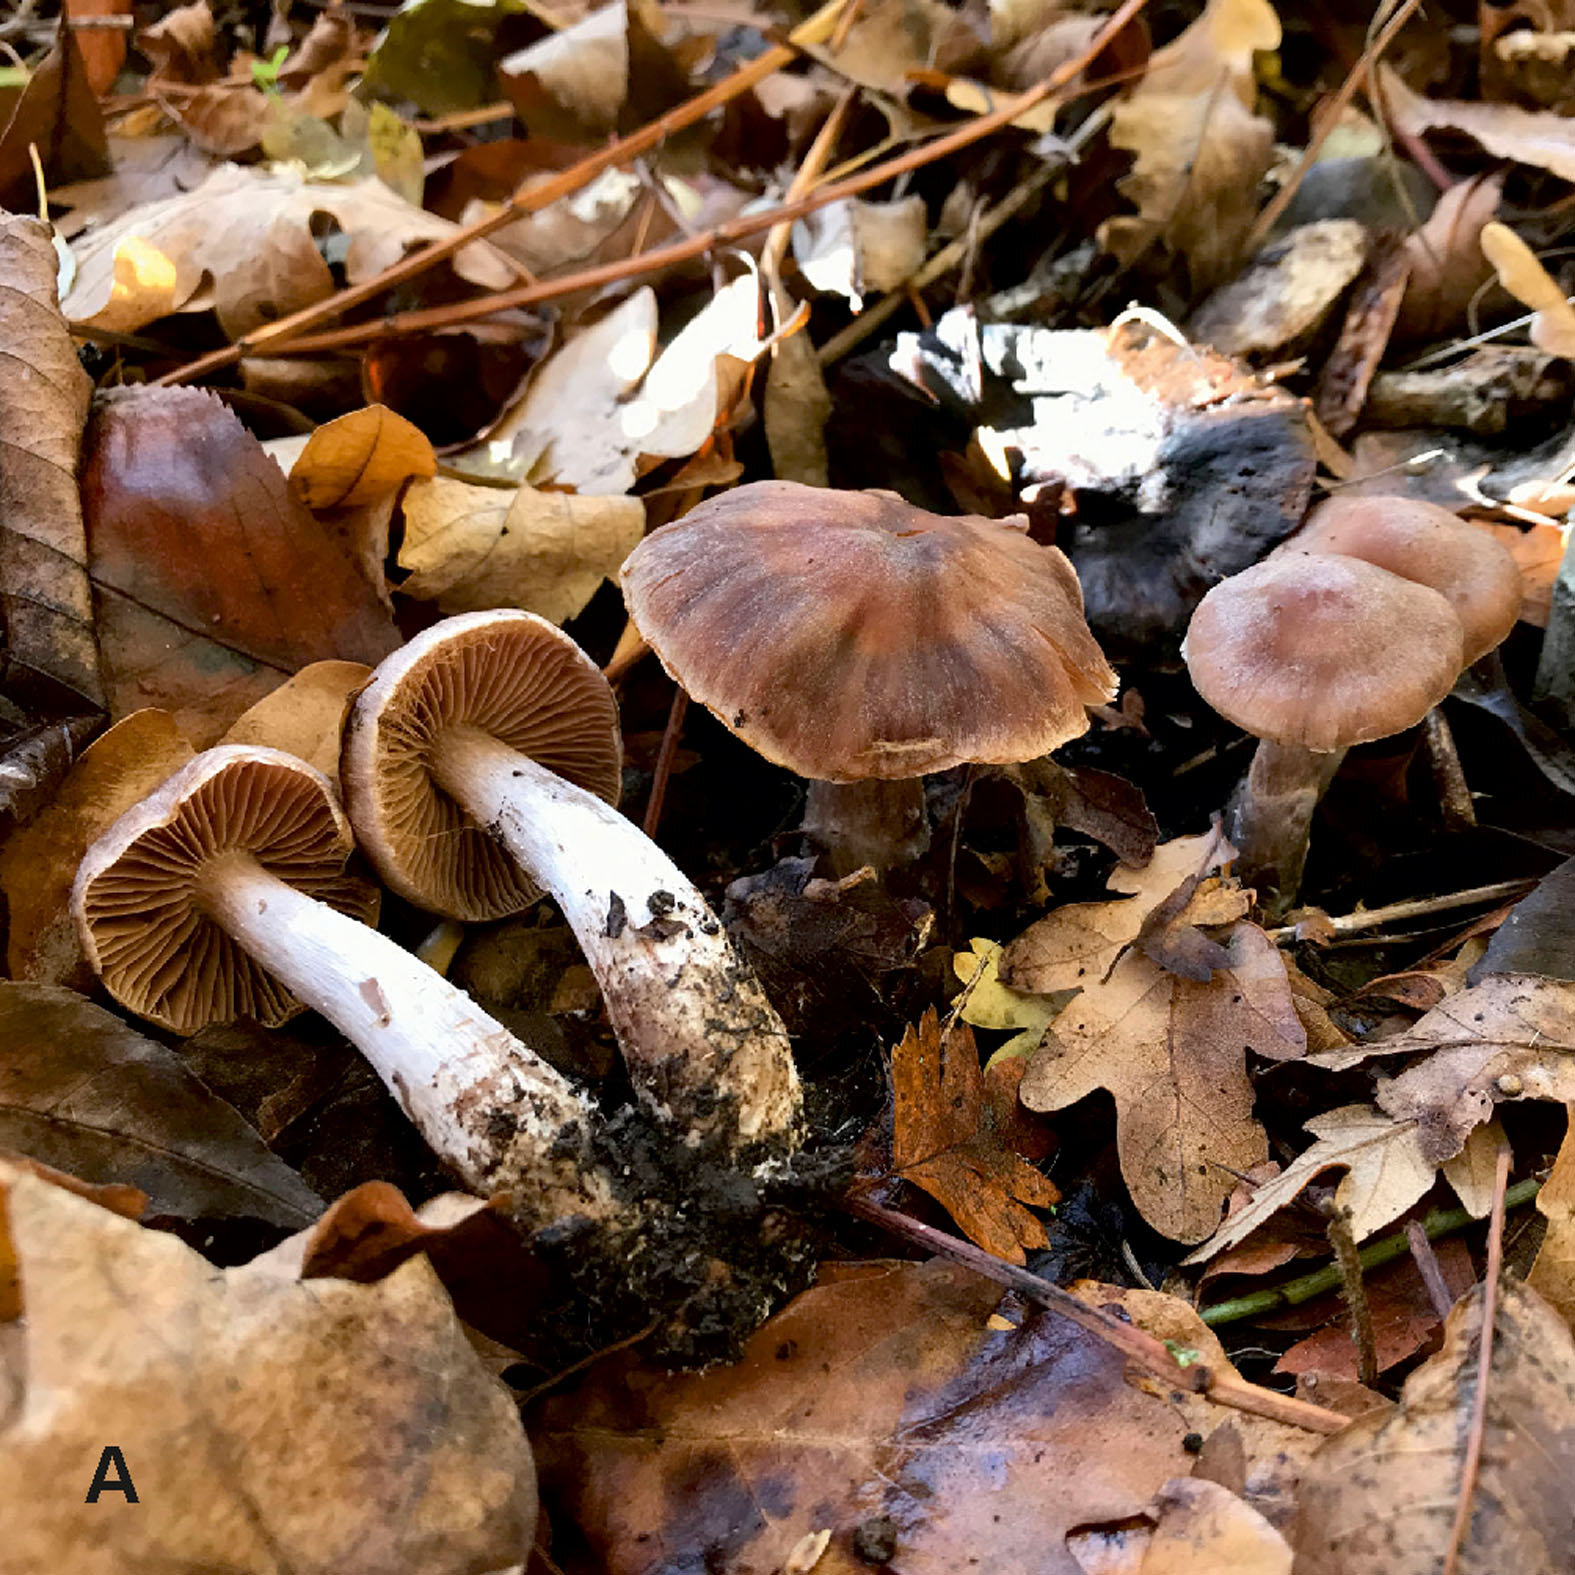 Cortinarius heatherae was discovered by a river on the boundary of Heathrow airport in the U.K. Image by Andy Overall.